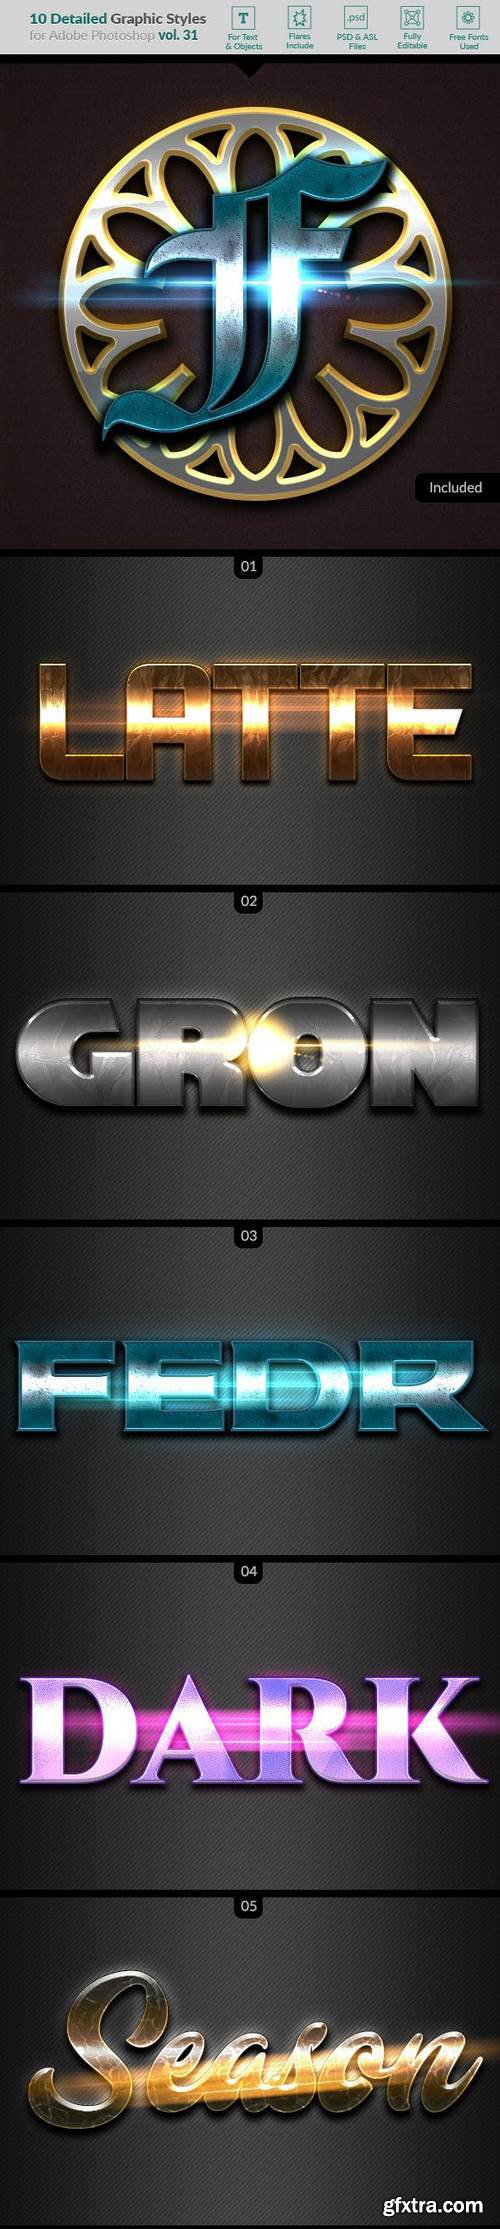 Graphicriver - 10 Text Effects Vol. 31 22672051